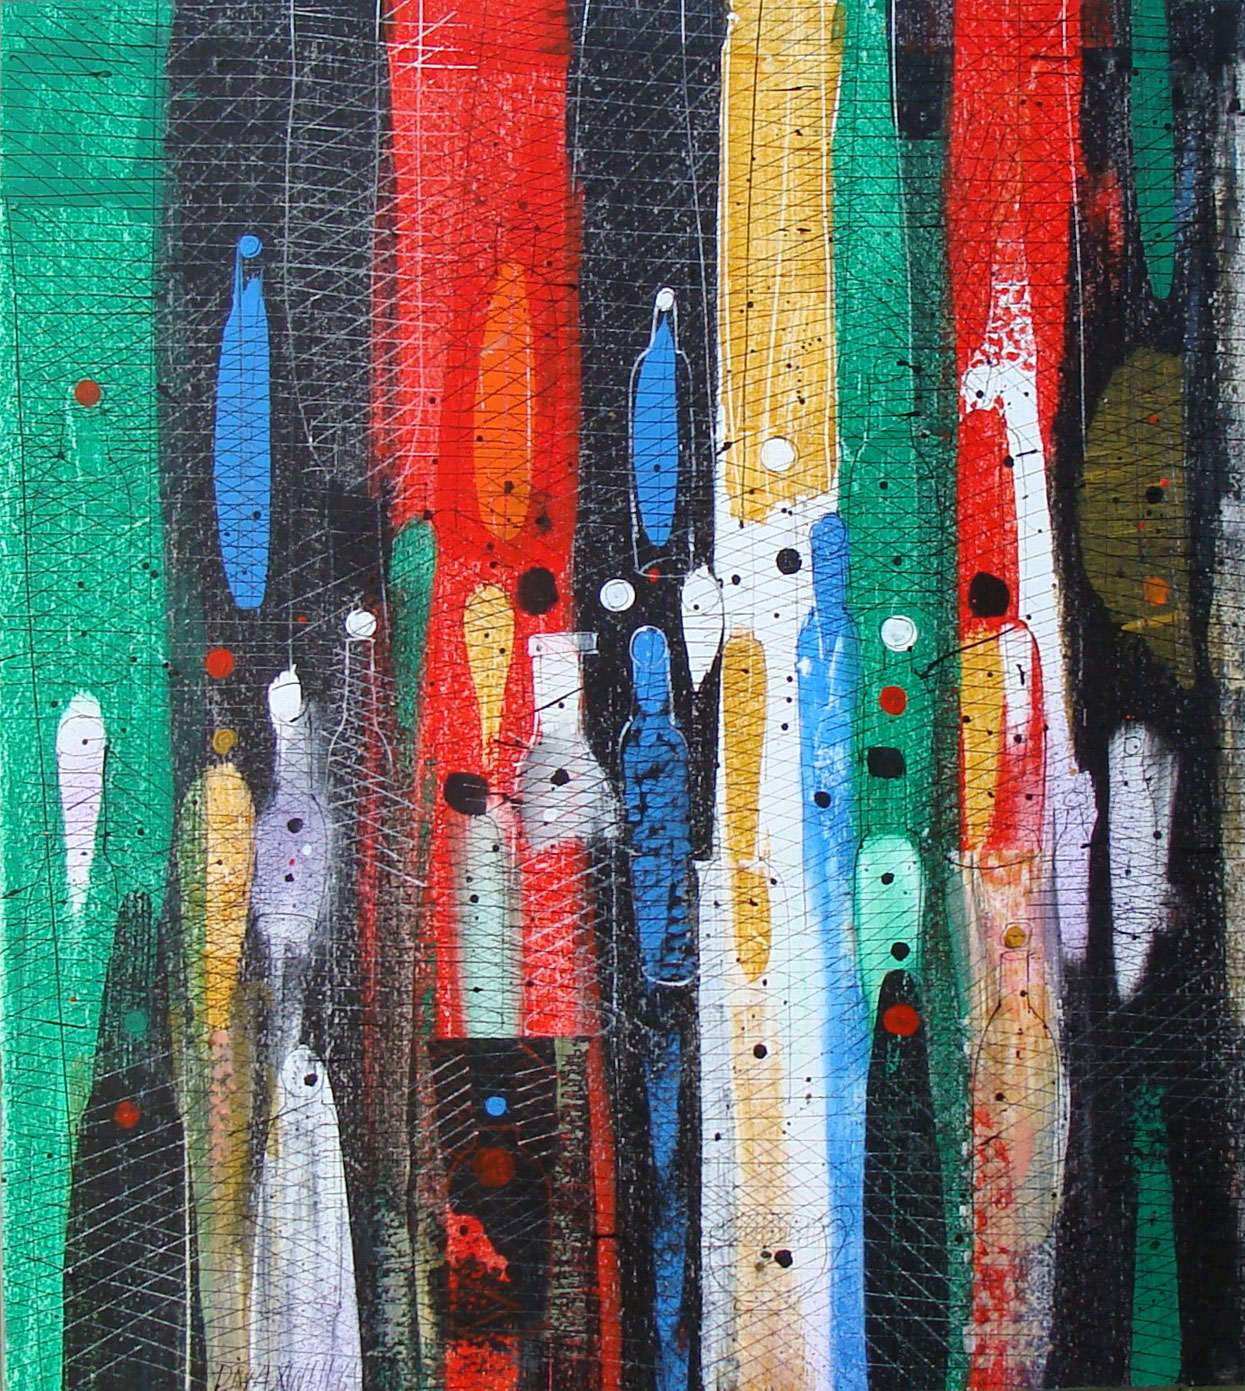 Abstract Sill Life with Bottles 1964 40x36